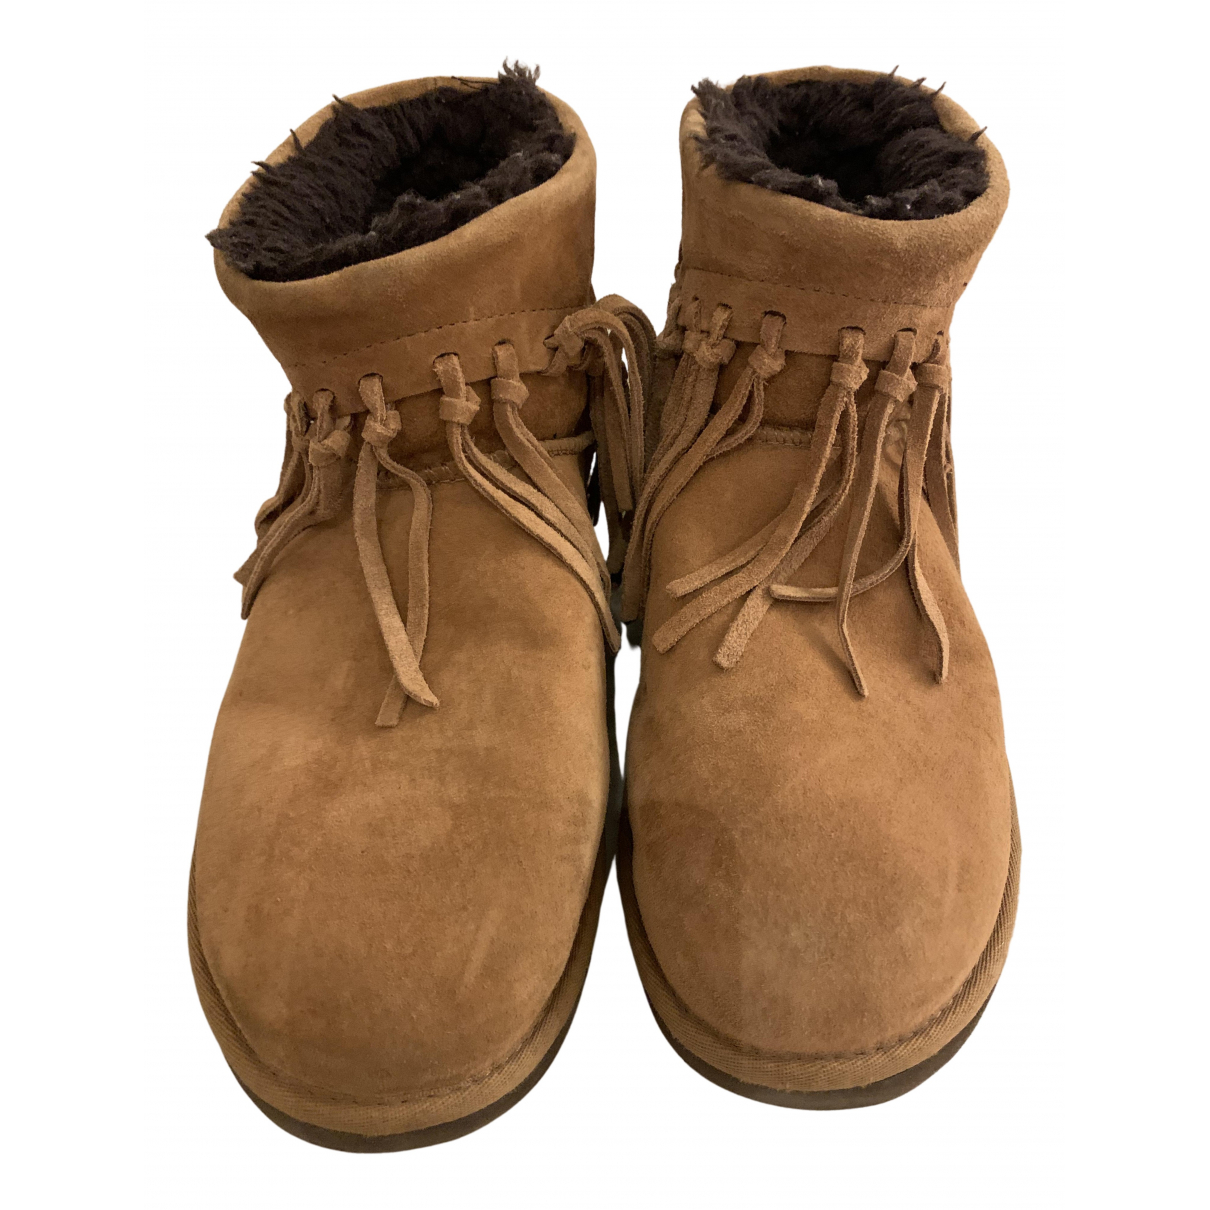 Ugg N Camel Suede Ankle boots for Women 40 EU